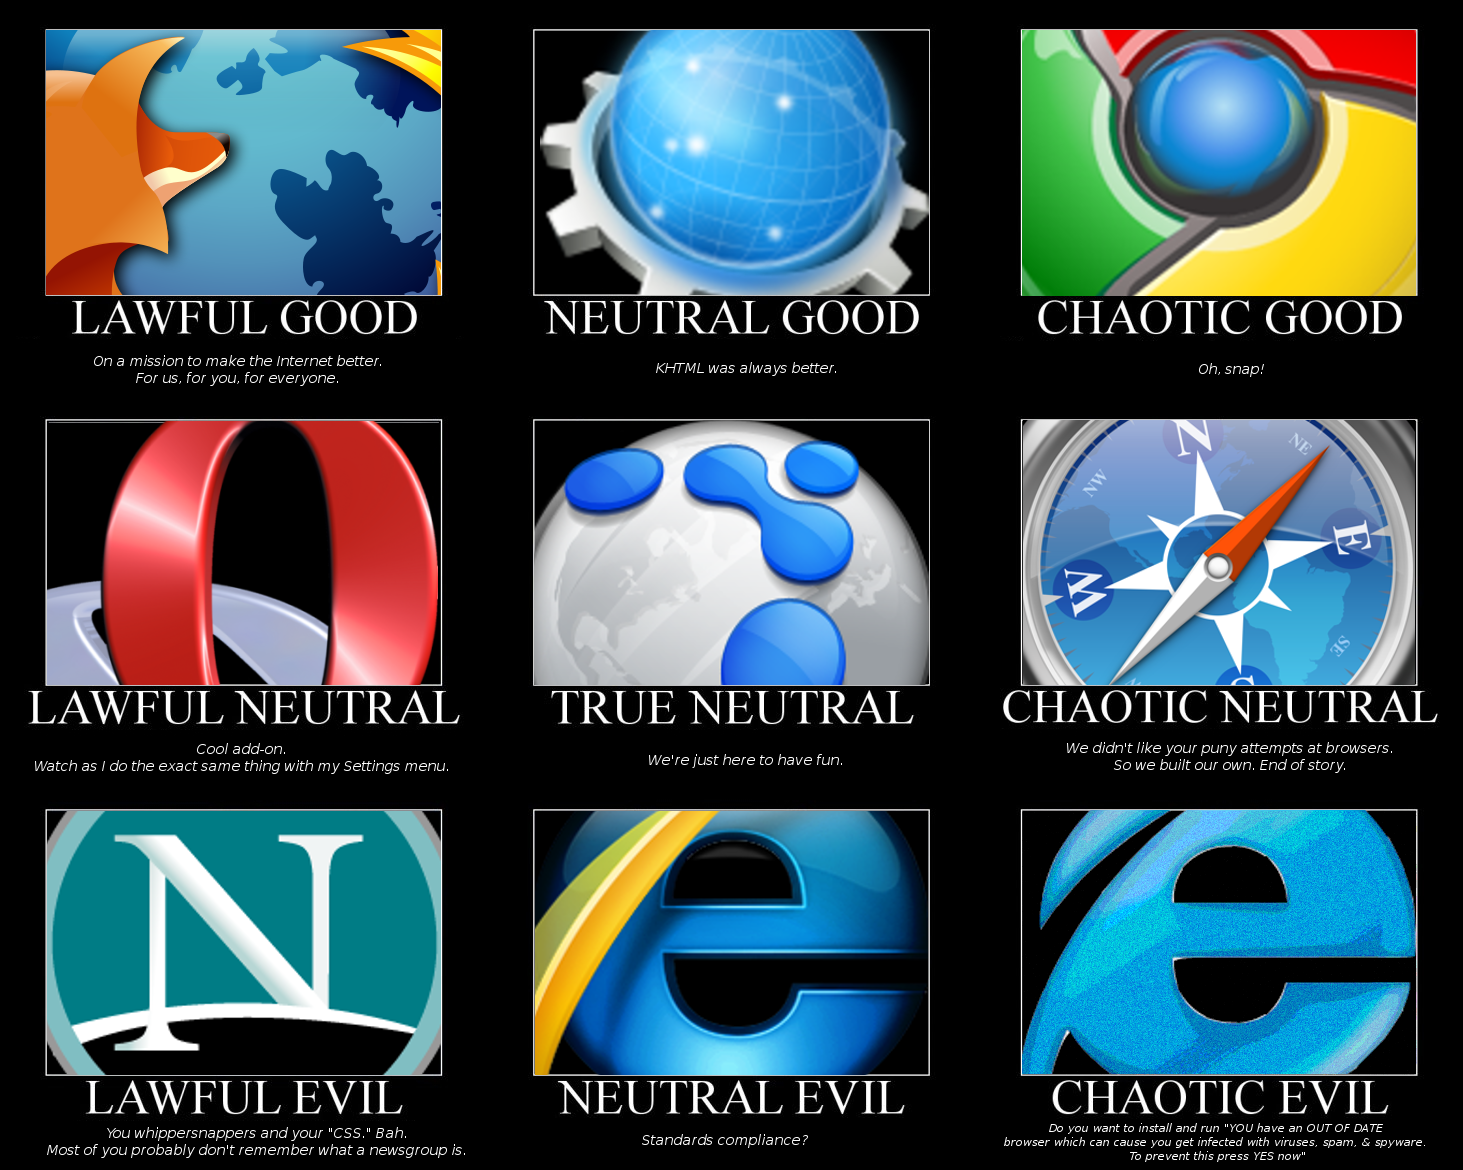 Neutral-Chaotic-Evil-Good-Lawful-Firefox